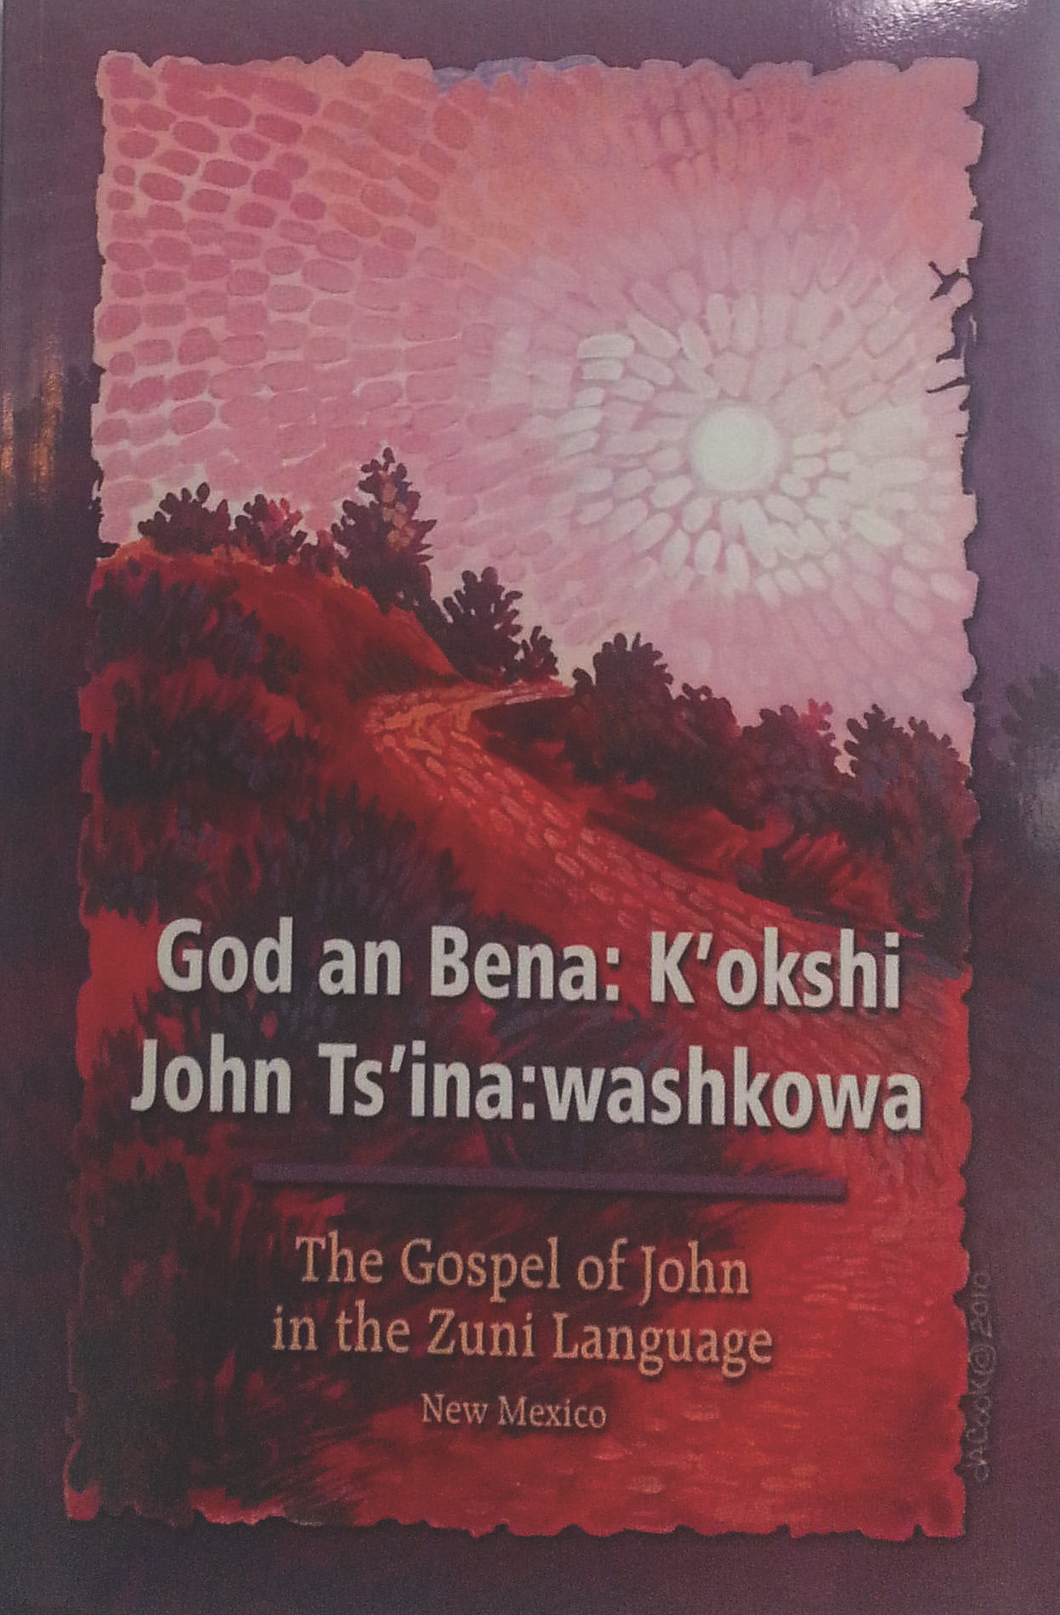 The Gospel of John in Zuni